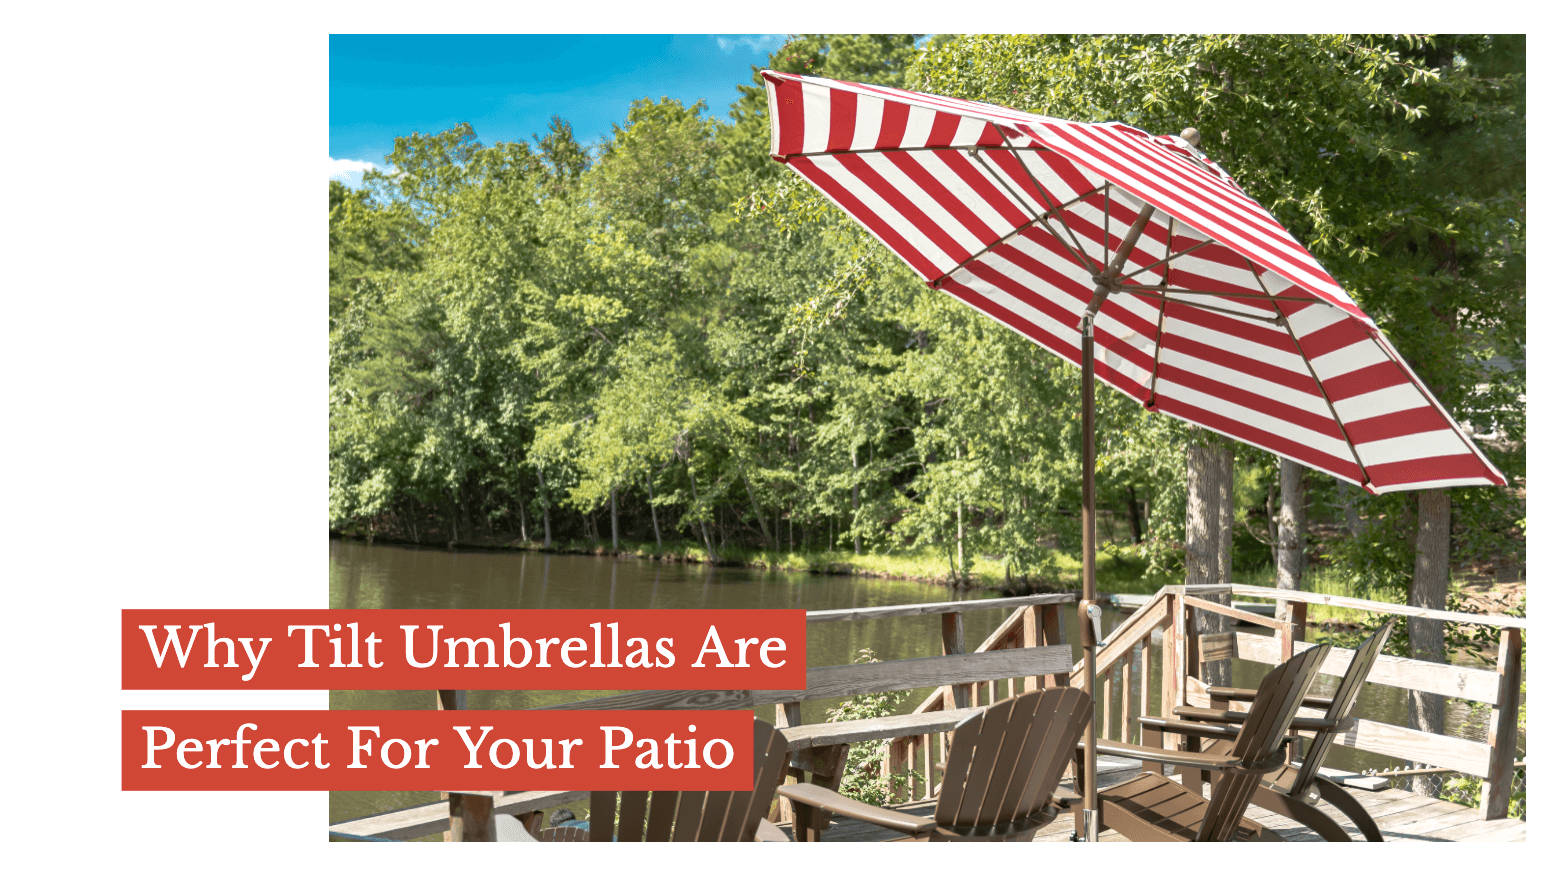 Why Tilt Umbrellas Are Perfect For Your Patio